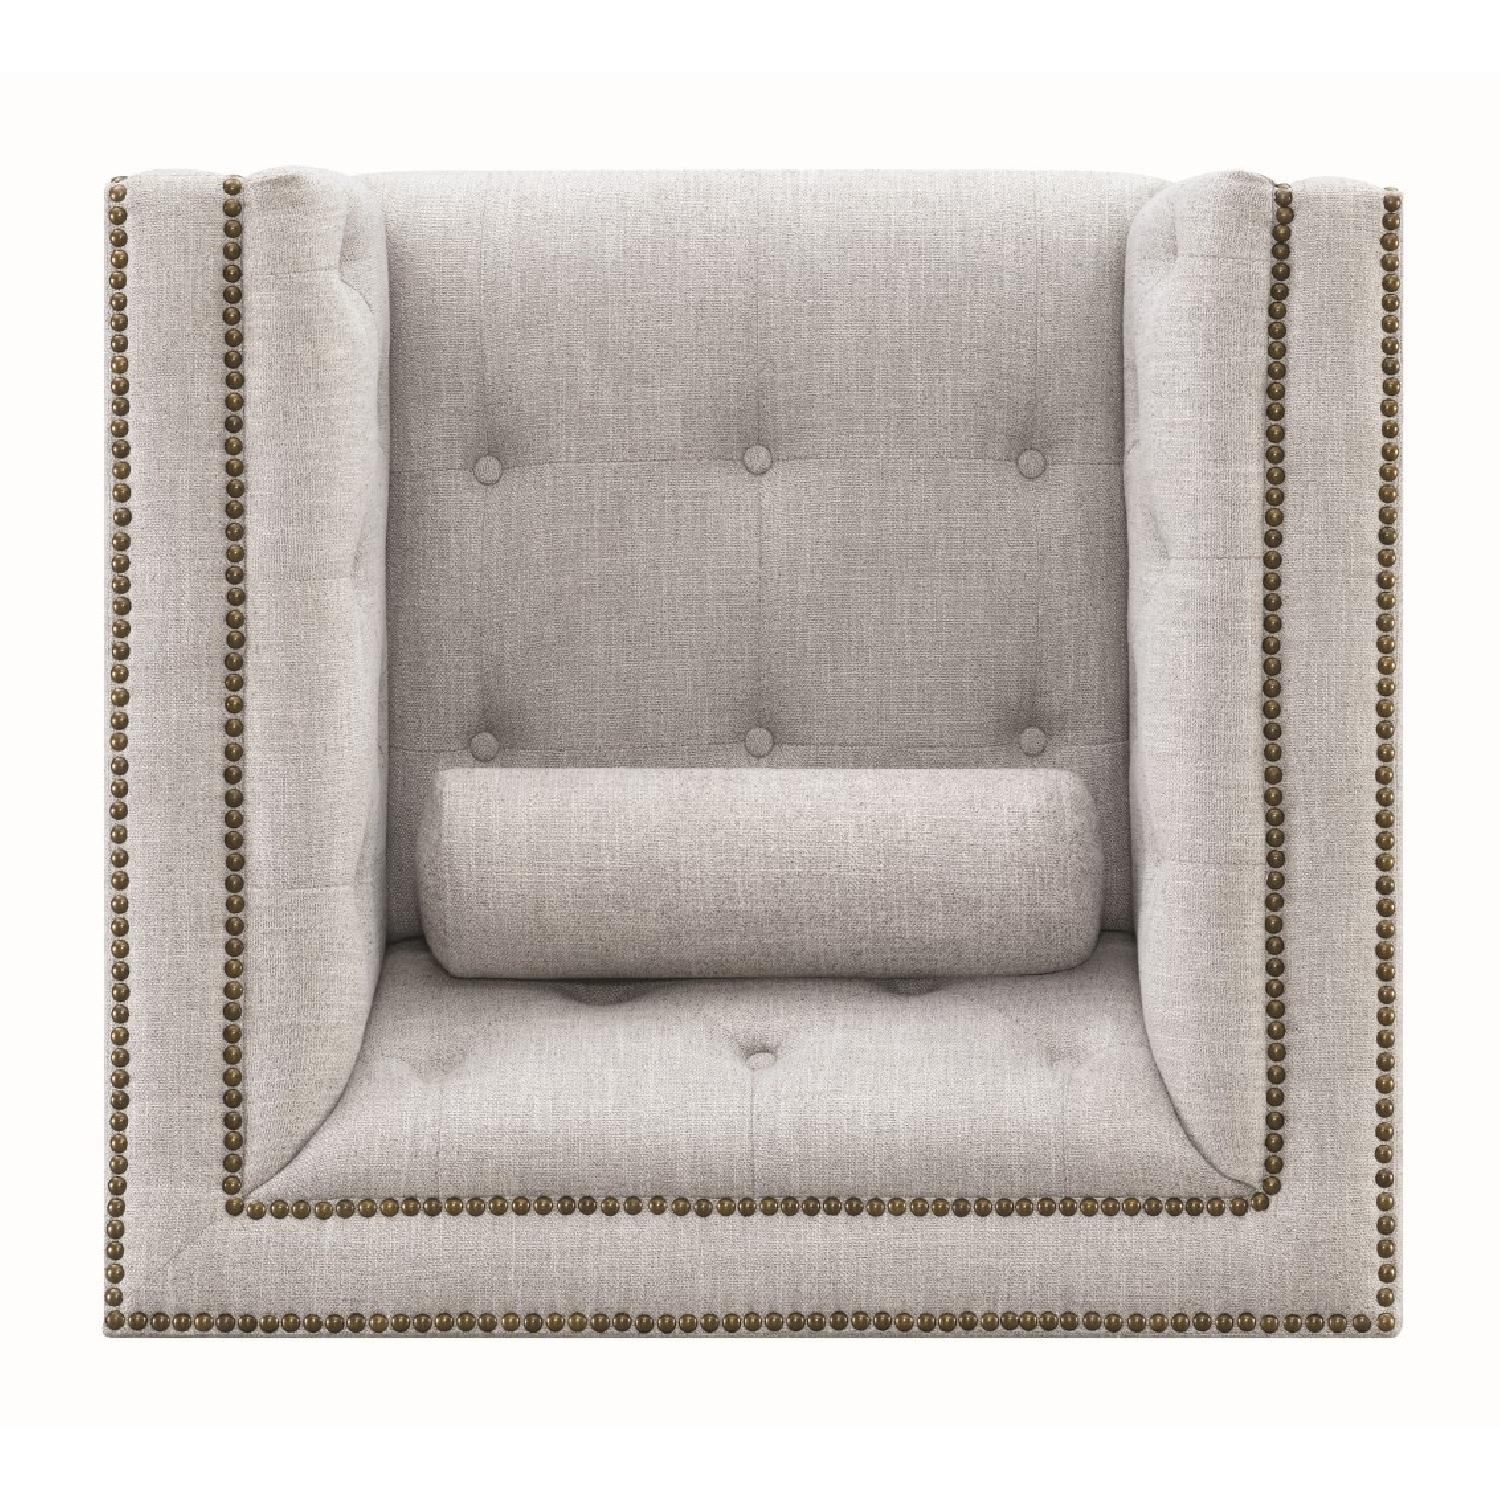 Modern Style Armchair w/ Tufted Buttons & Nailhead Accent - image-3